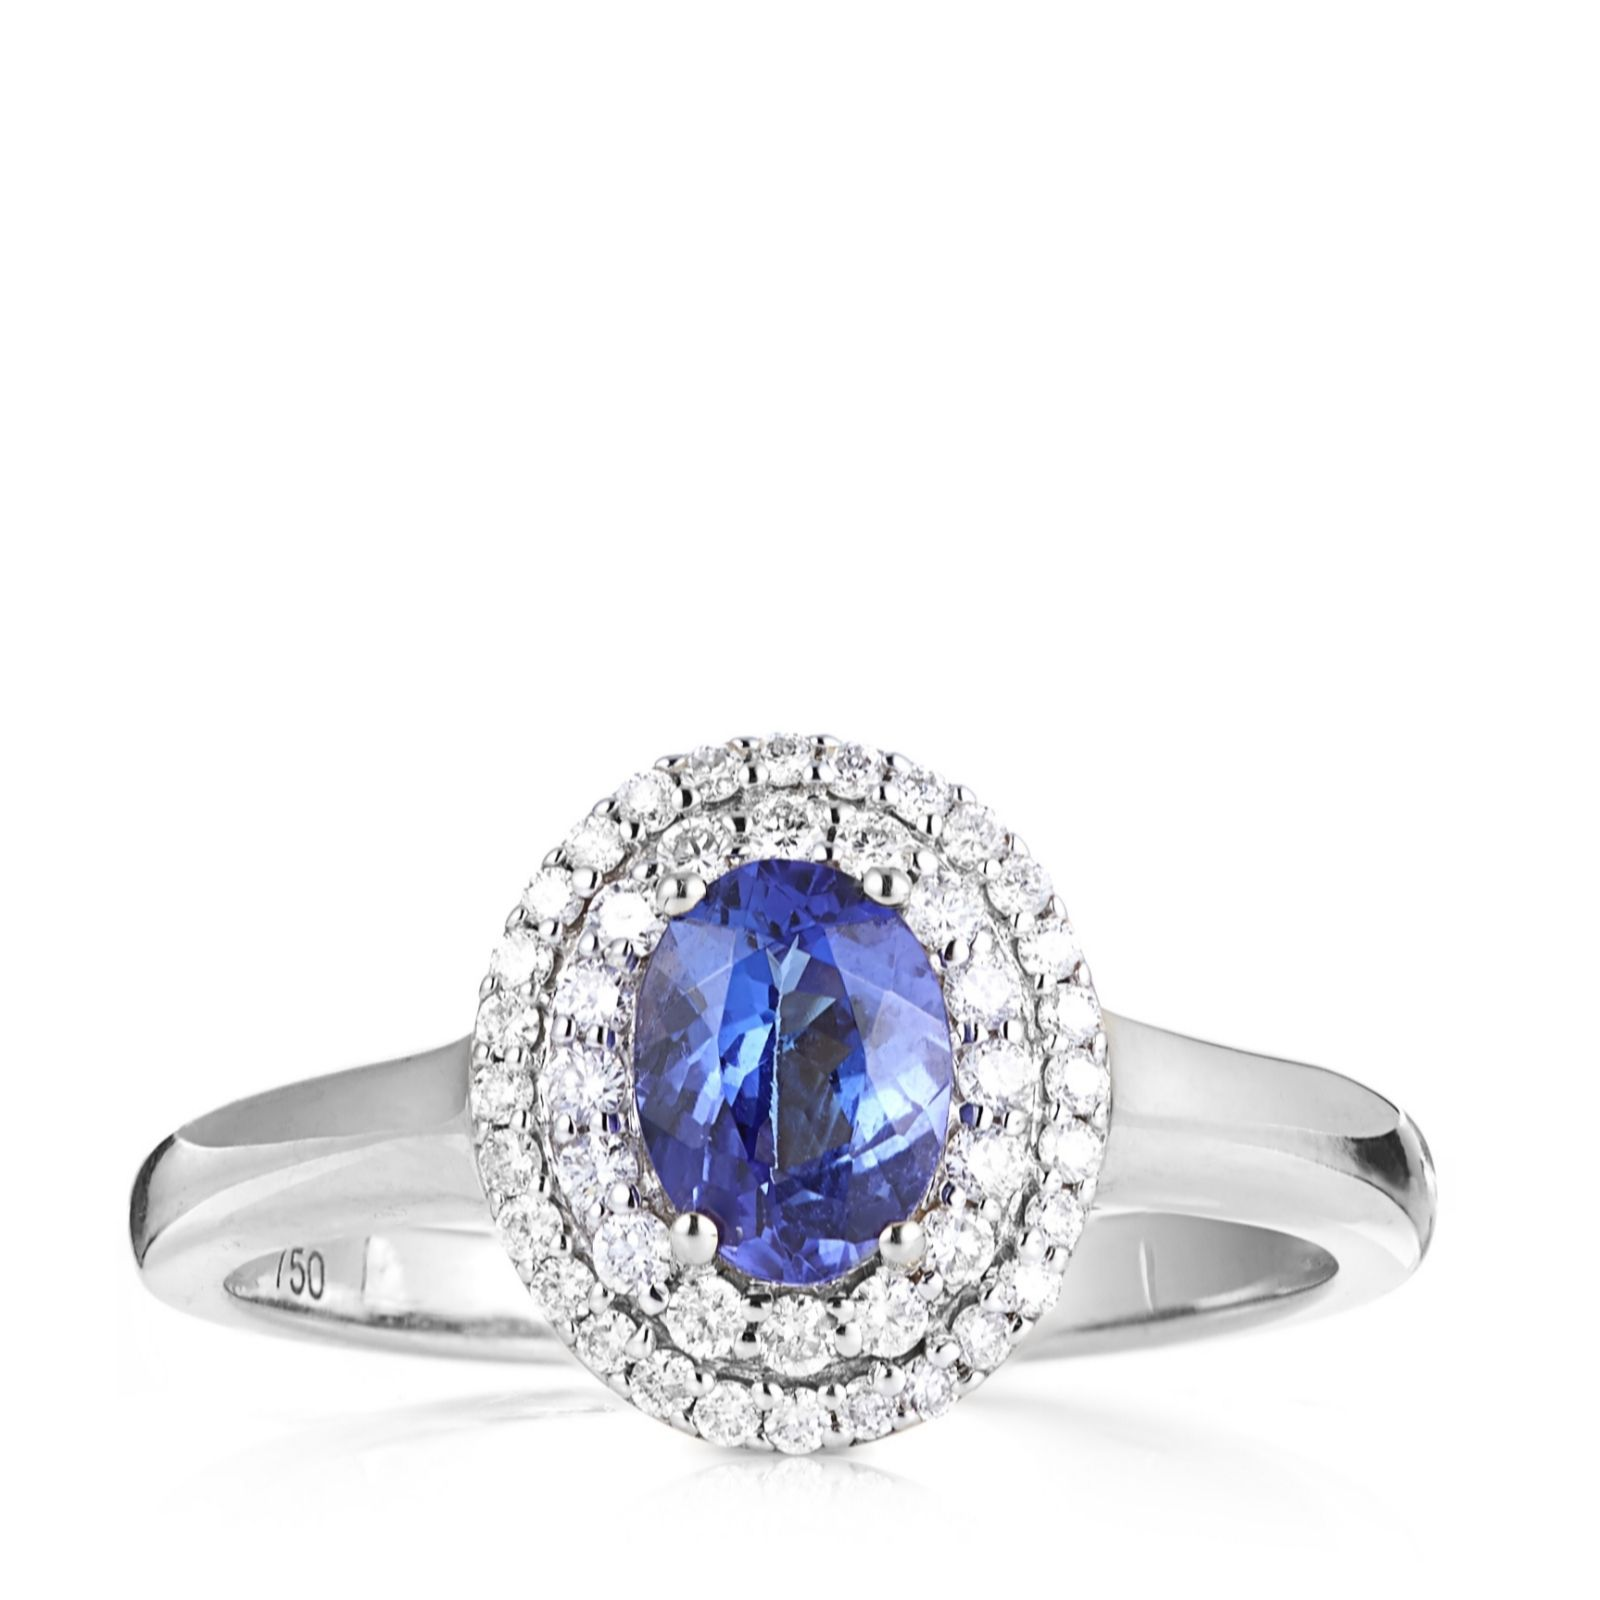 ring image tanzanite engagement rings vintage gemstone white gold boutique diamond